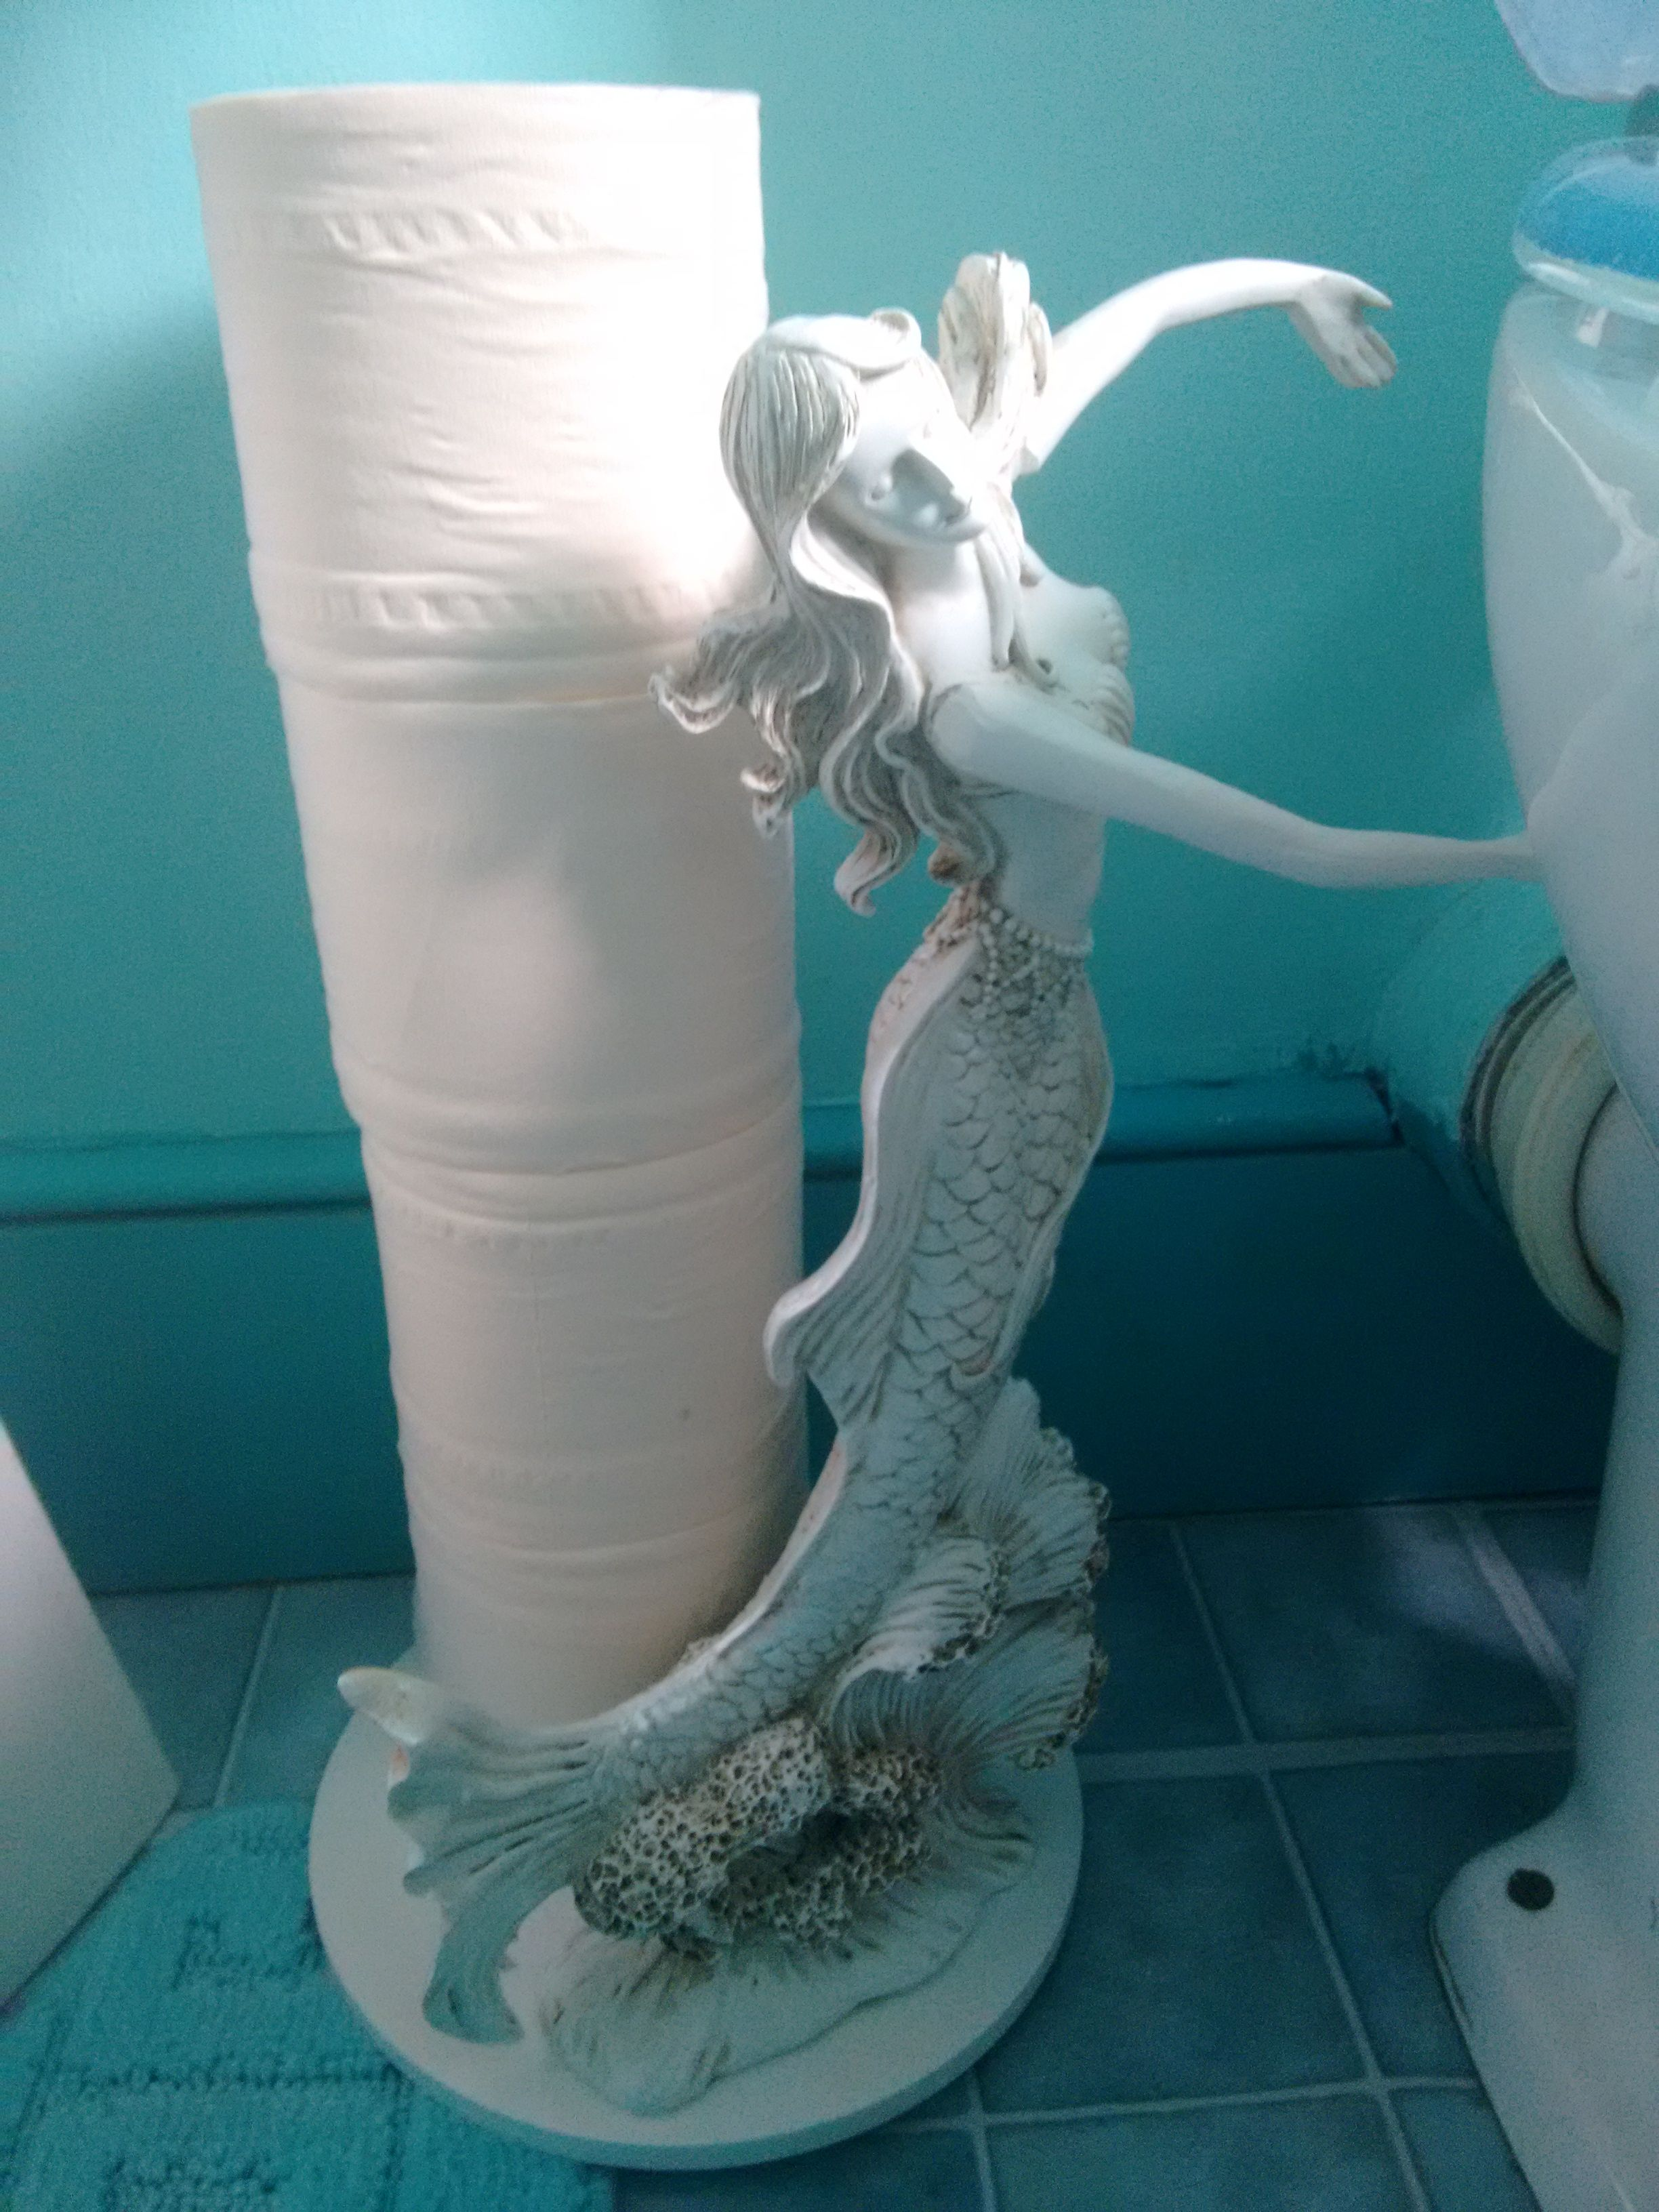 A Mermaid Toilet Paper Holder Just Perfect For My Bathroom